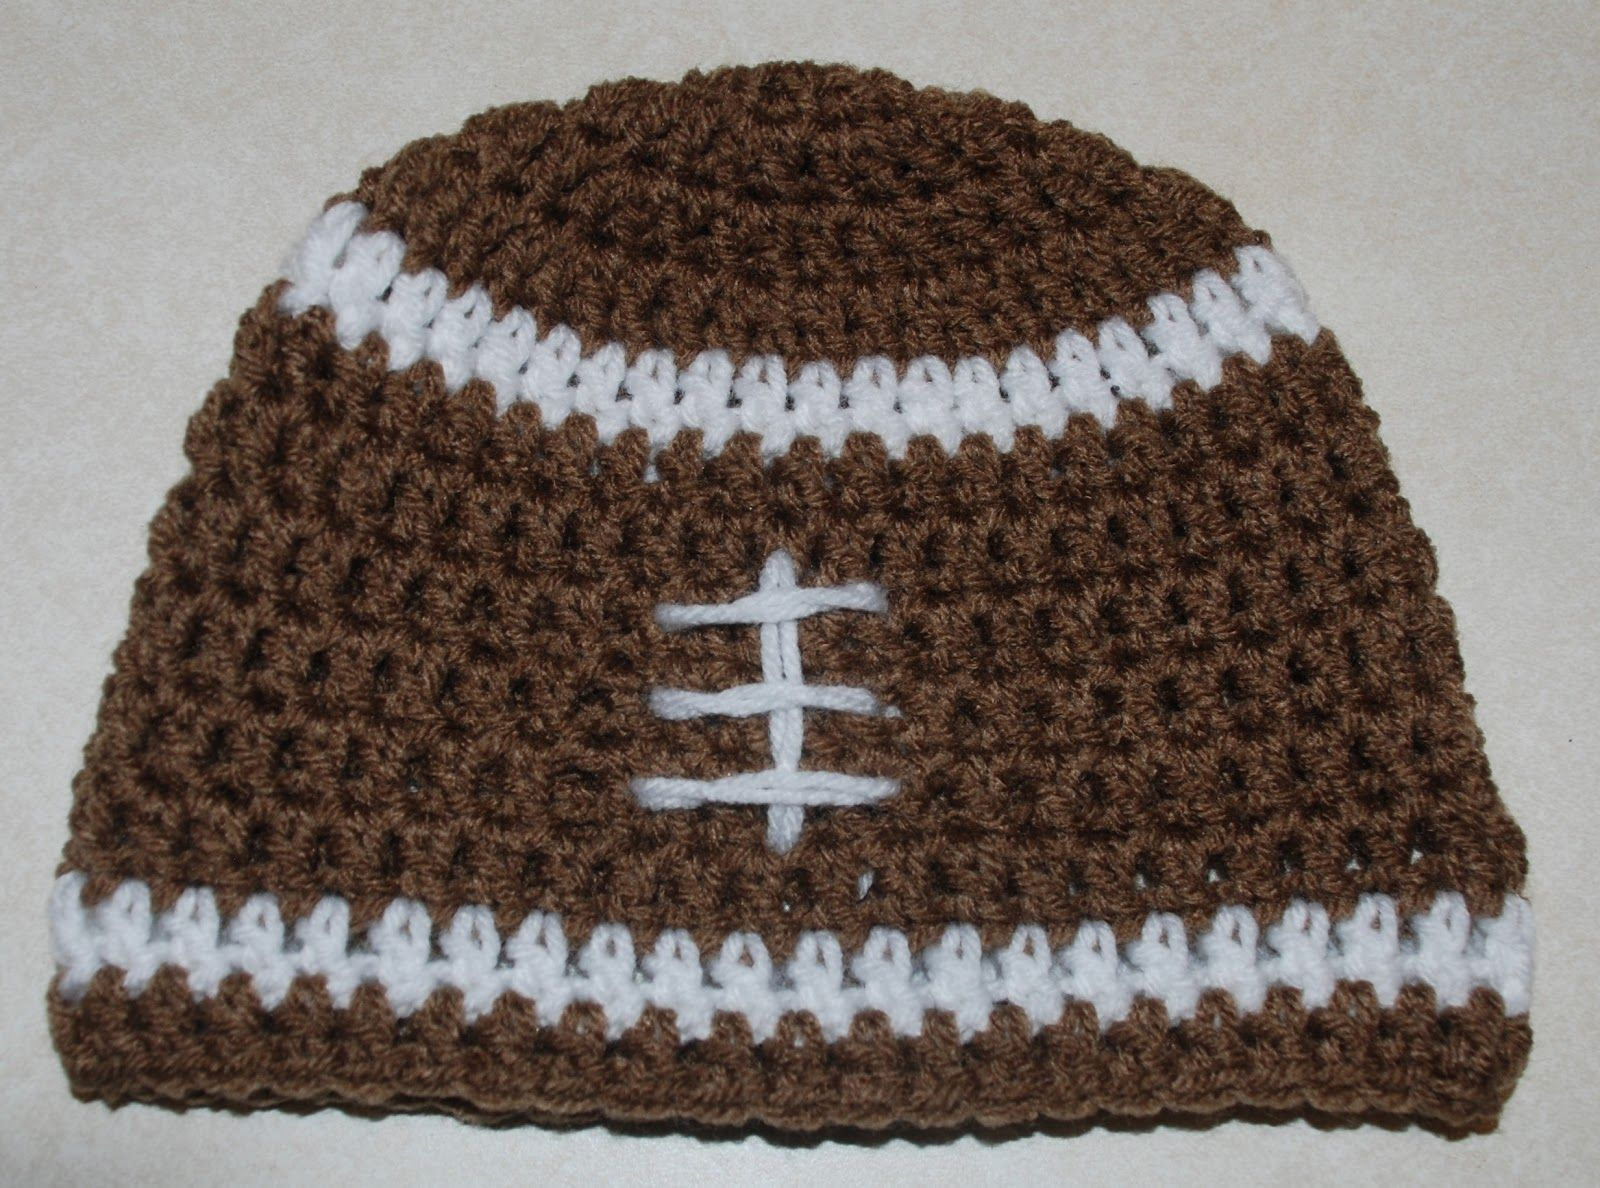 Crochet creative creations free patterns instructions crochet crochet creative creations free patterns instructions crochet football hat bankloansurffo Choice Image